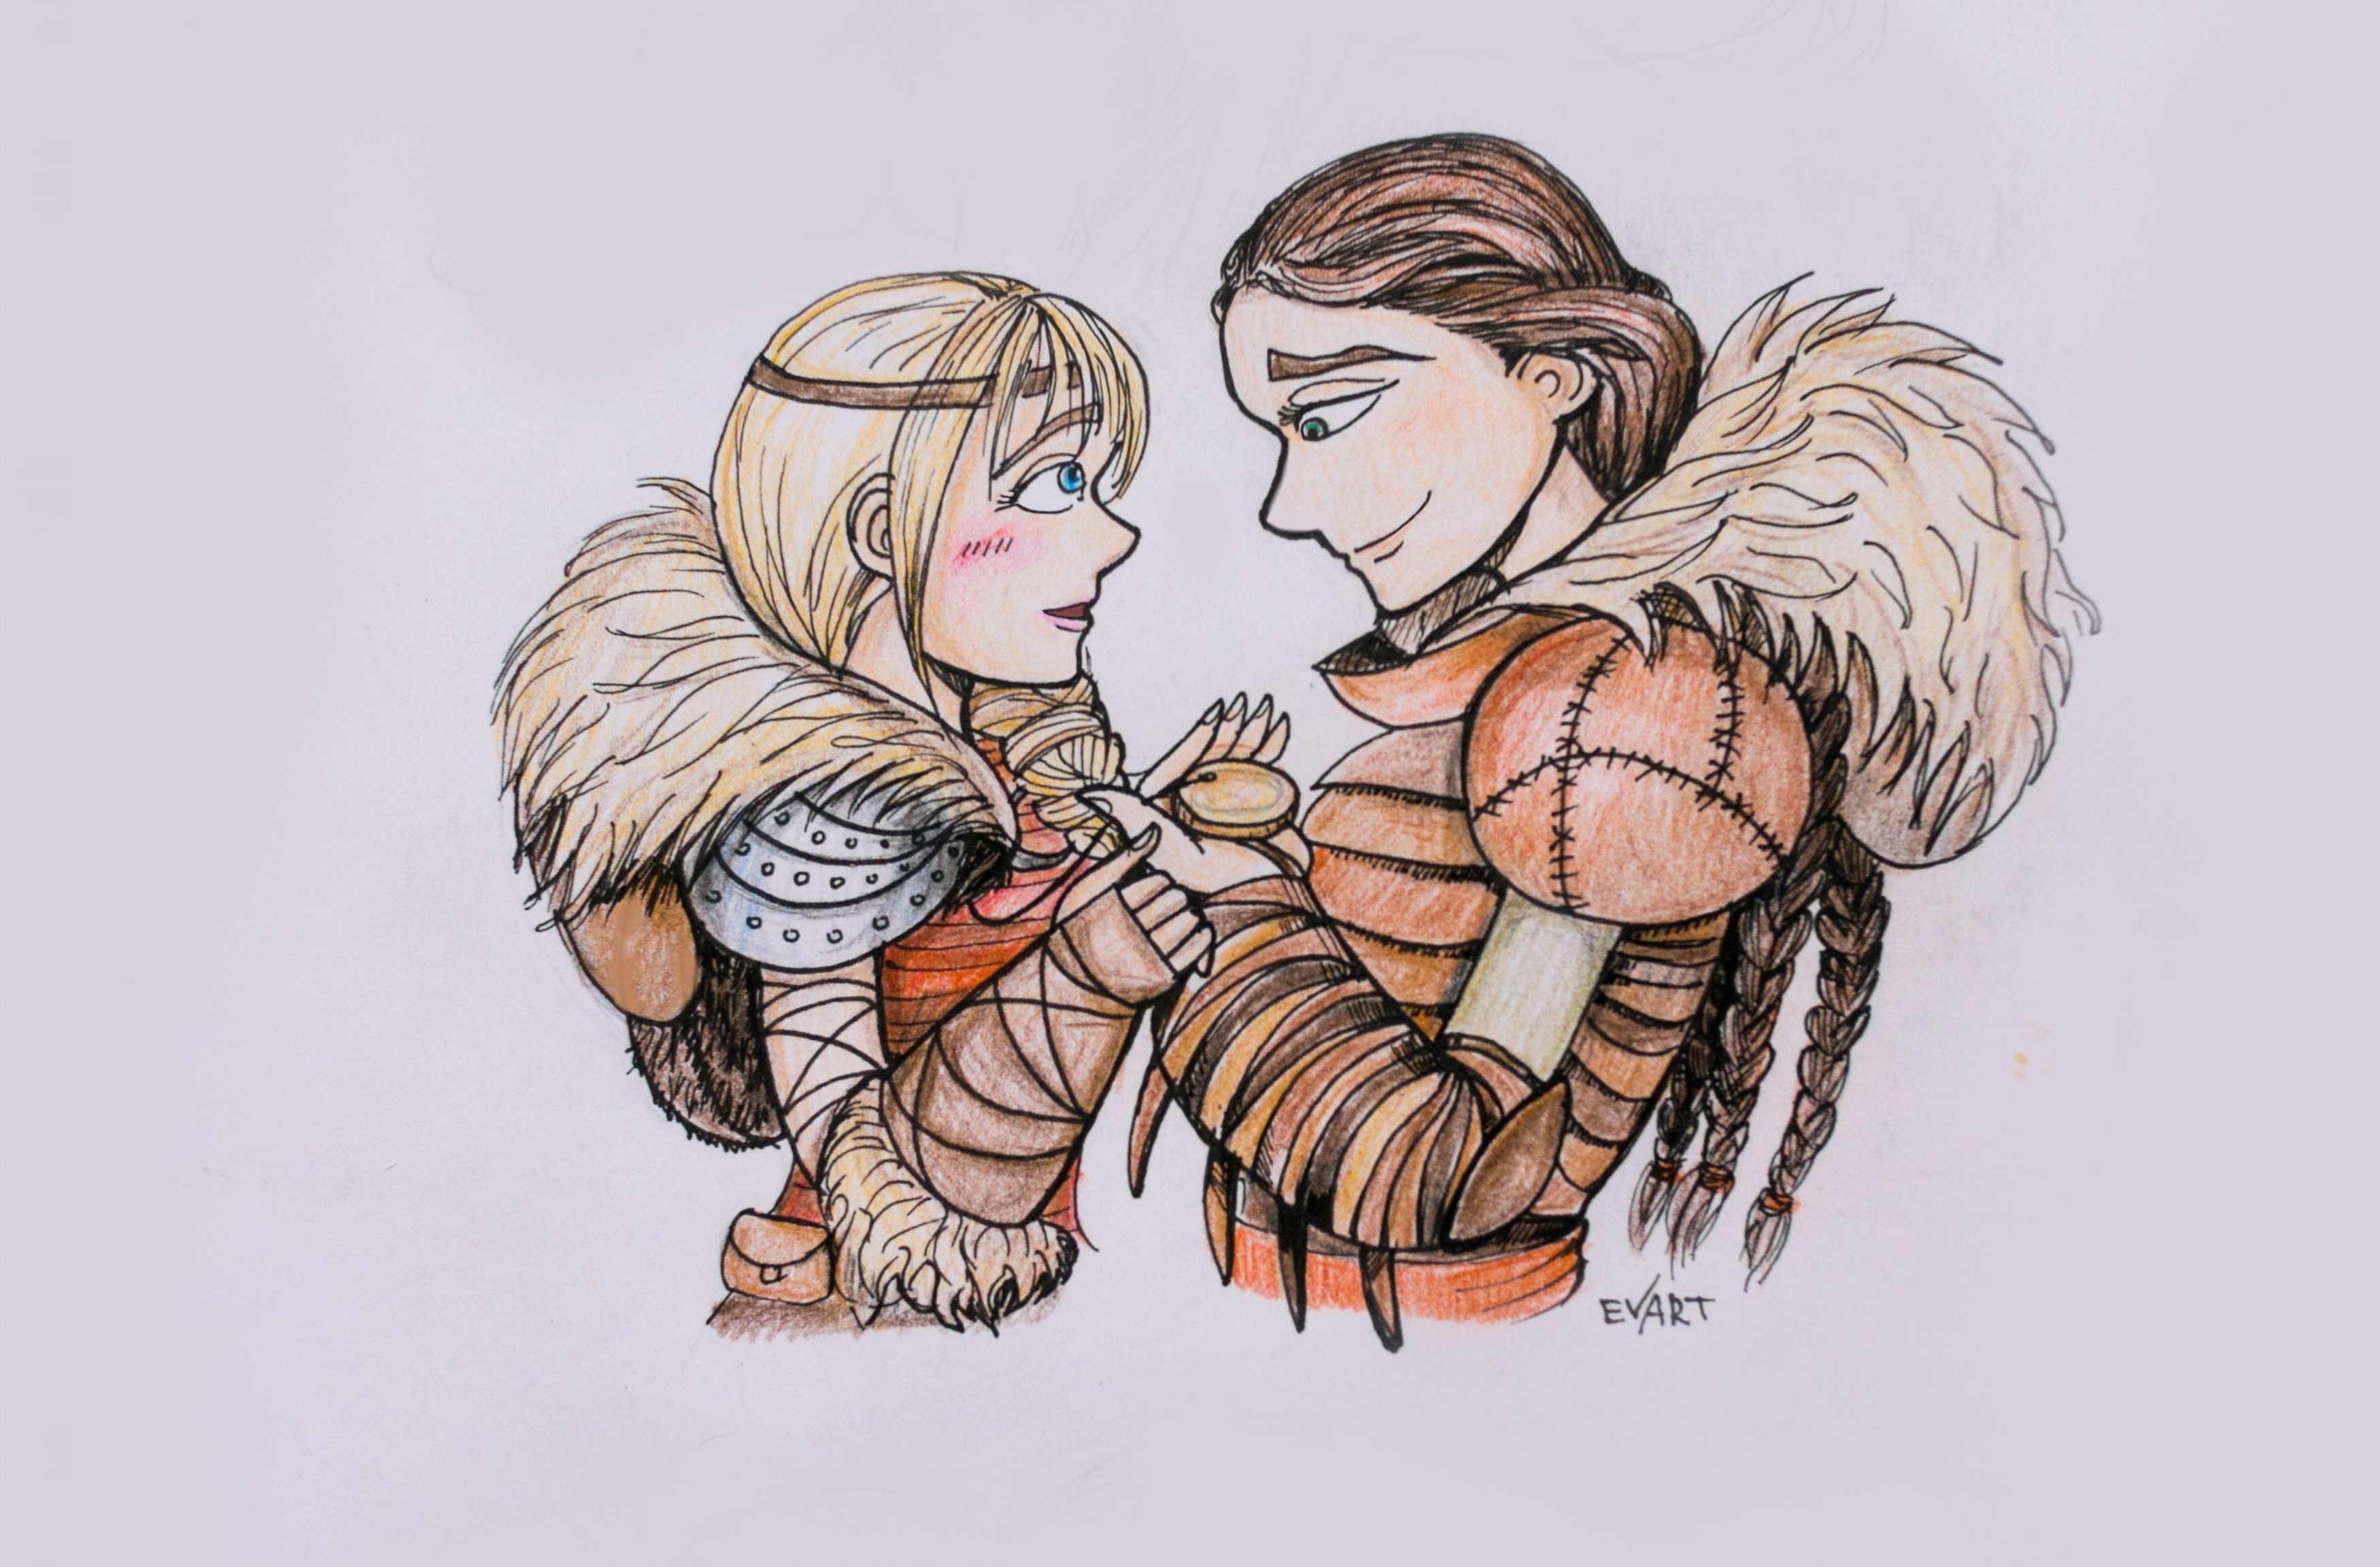 Valka and Astrid (with Stoick/Hiccup betrothal necklace